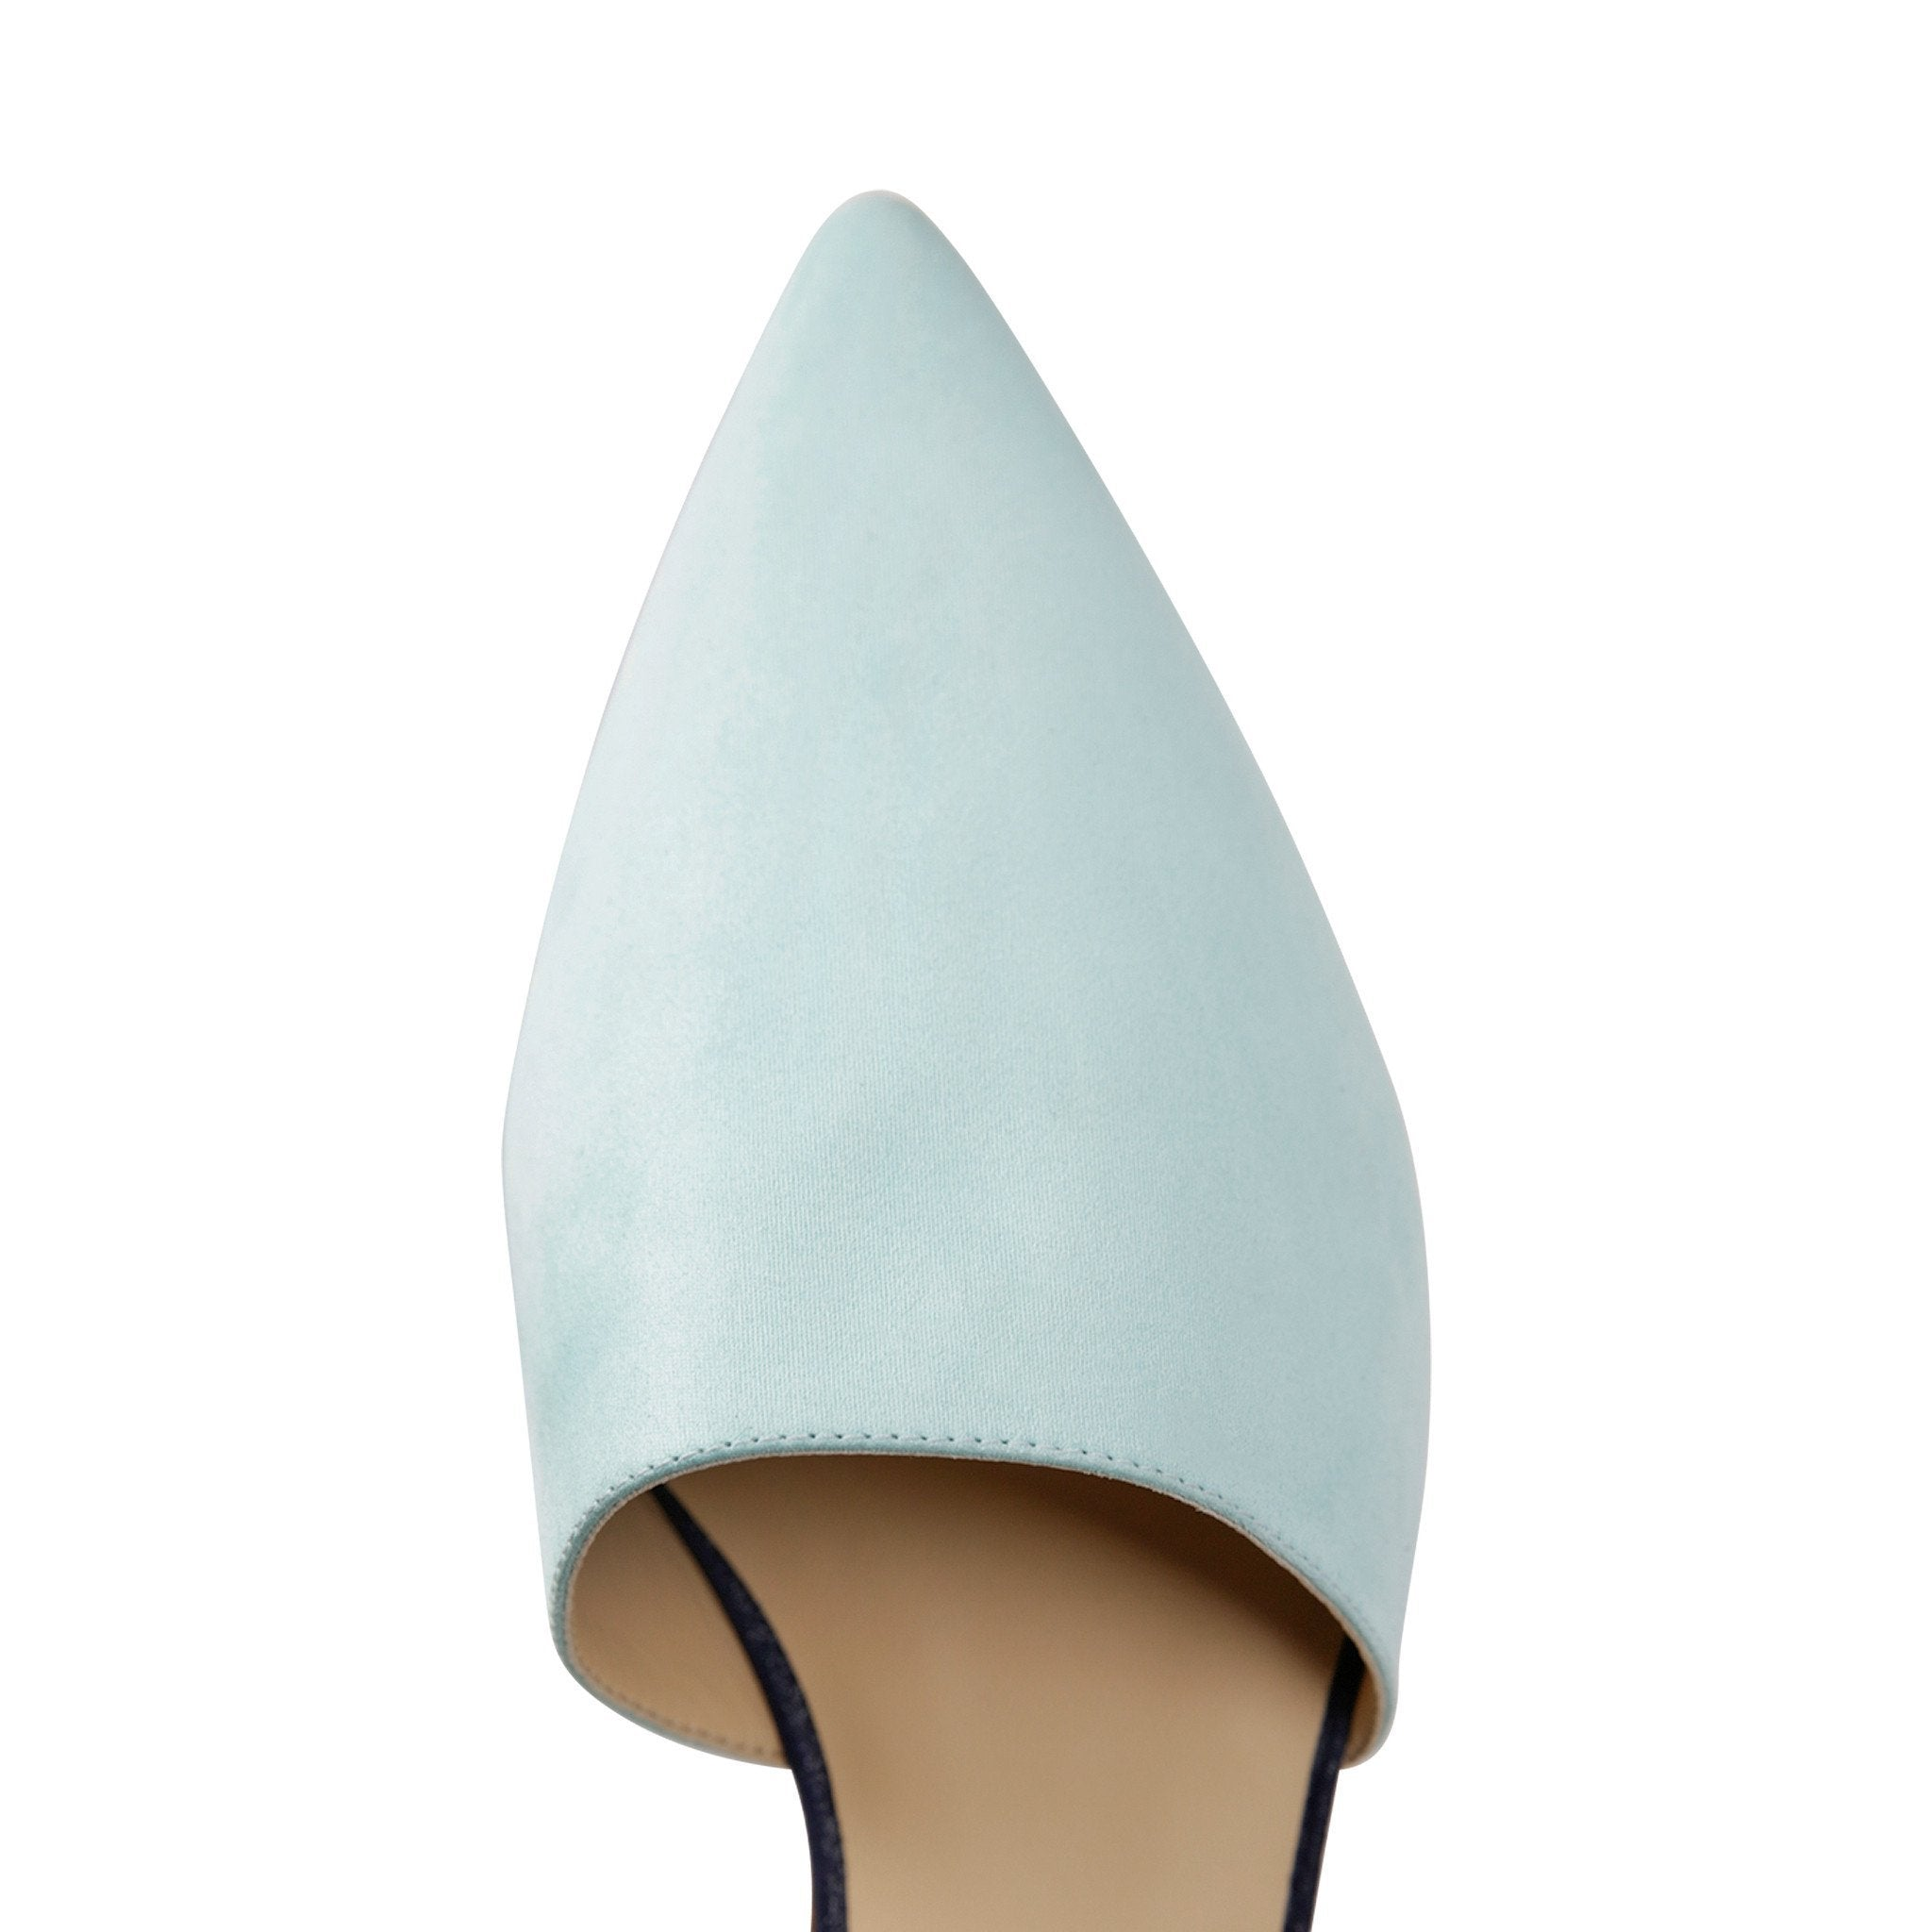 ELBA - Hydra Sky Mint + Midnight, VIAJIYU - Women's Hand Made Sustainable Luxury Shoes. Made in Italy. Made to Order.